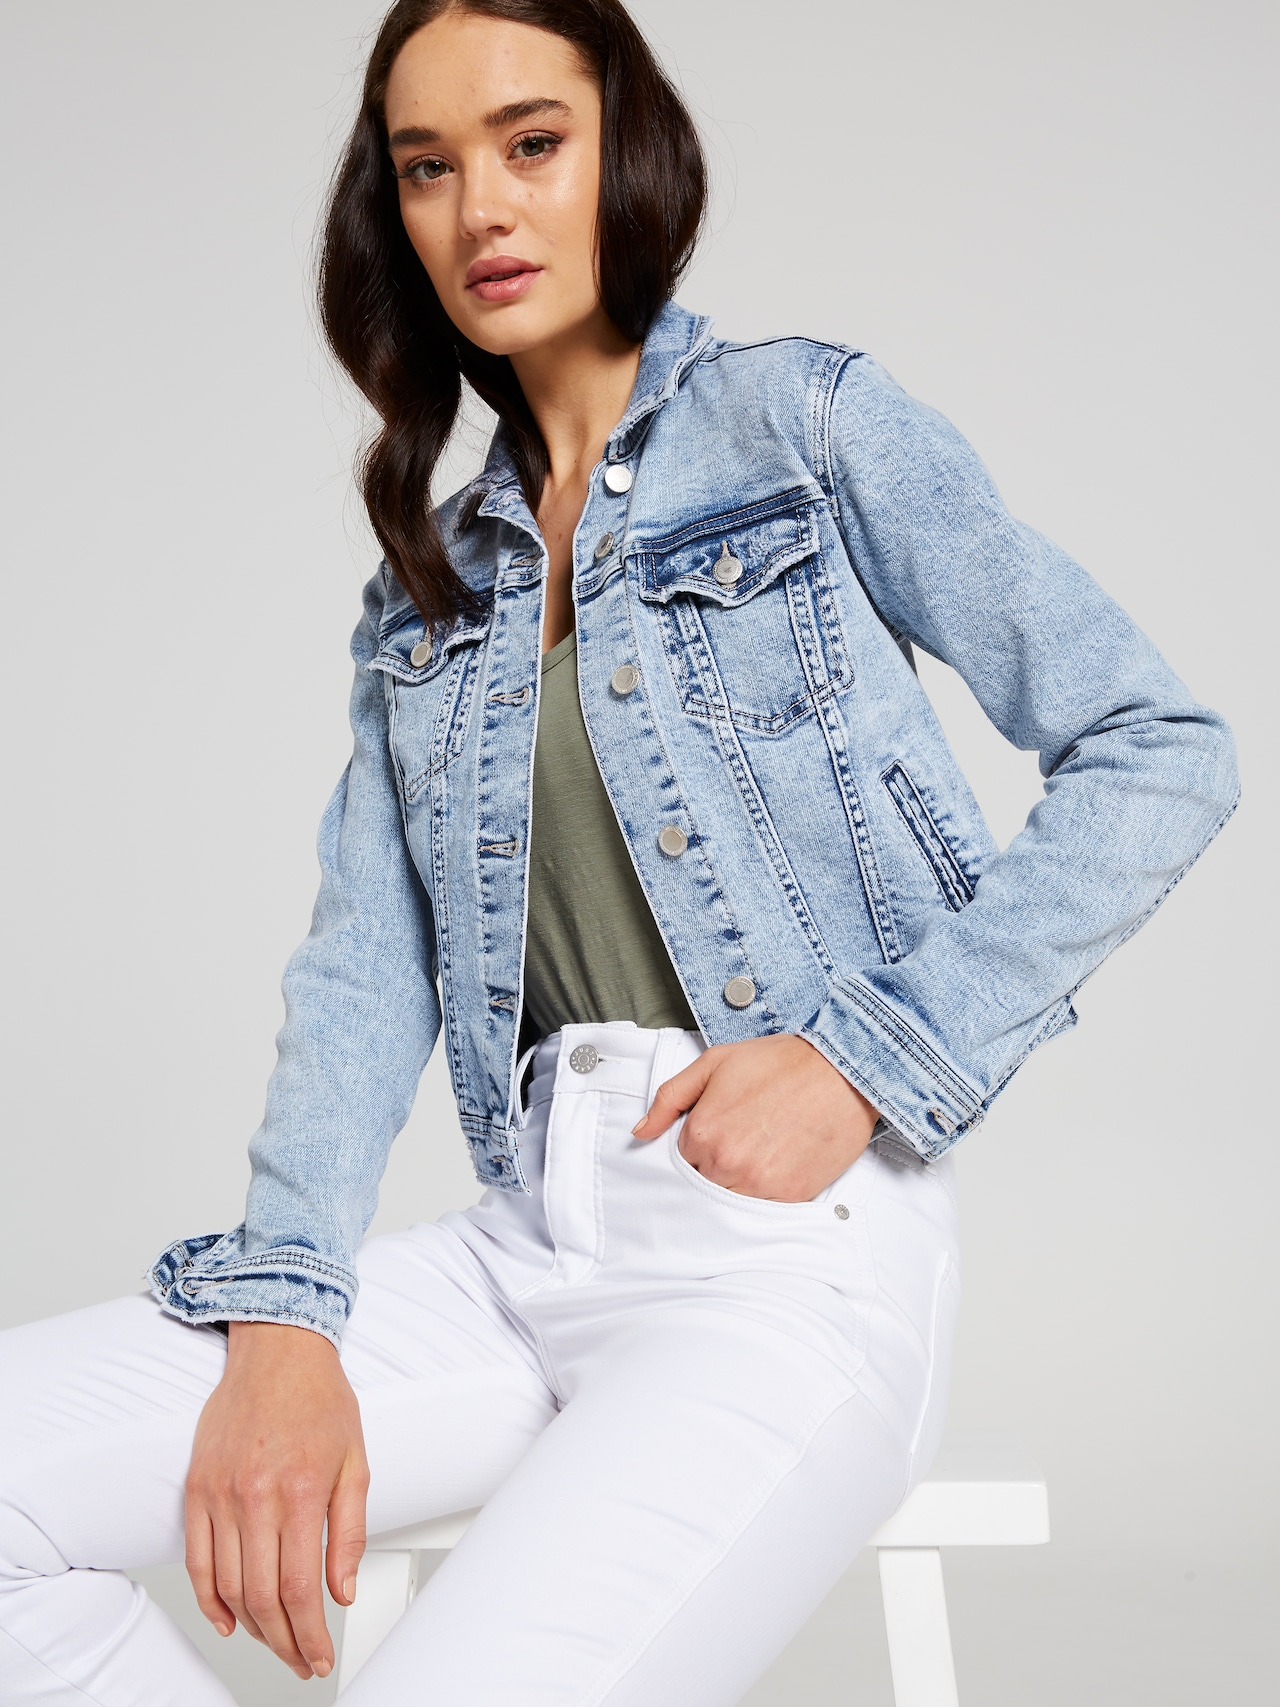 discount sale official sale on wholesale Finley Cropped Trucker Jacket - Just Jeans Online